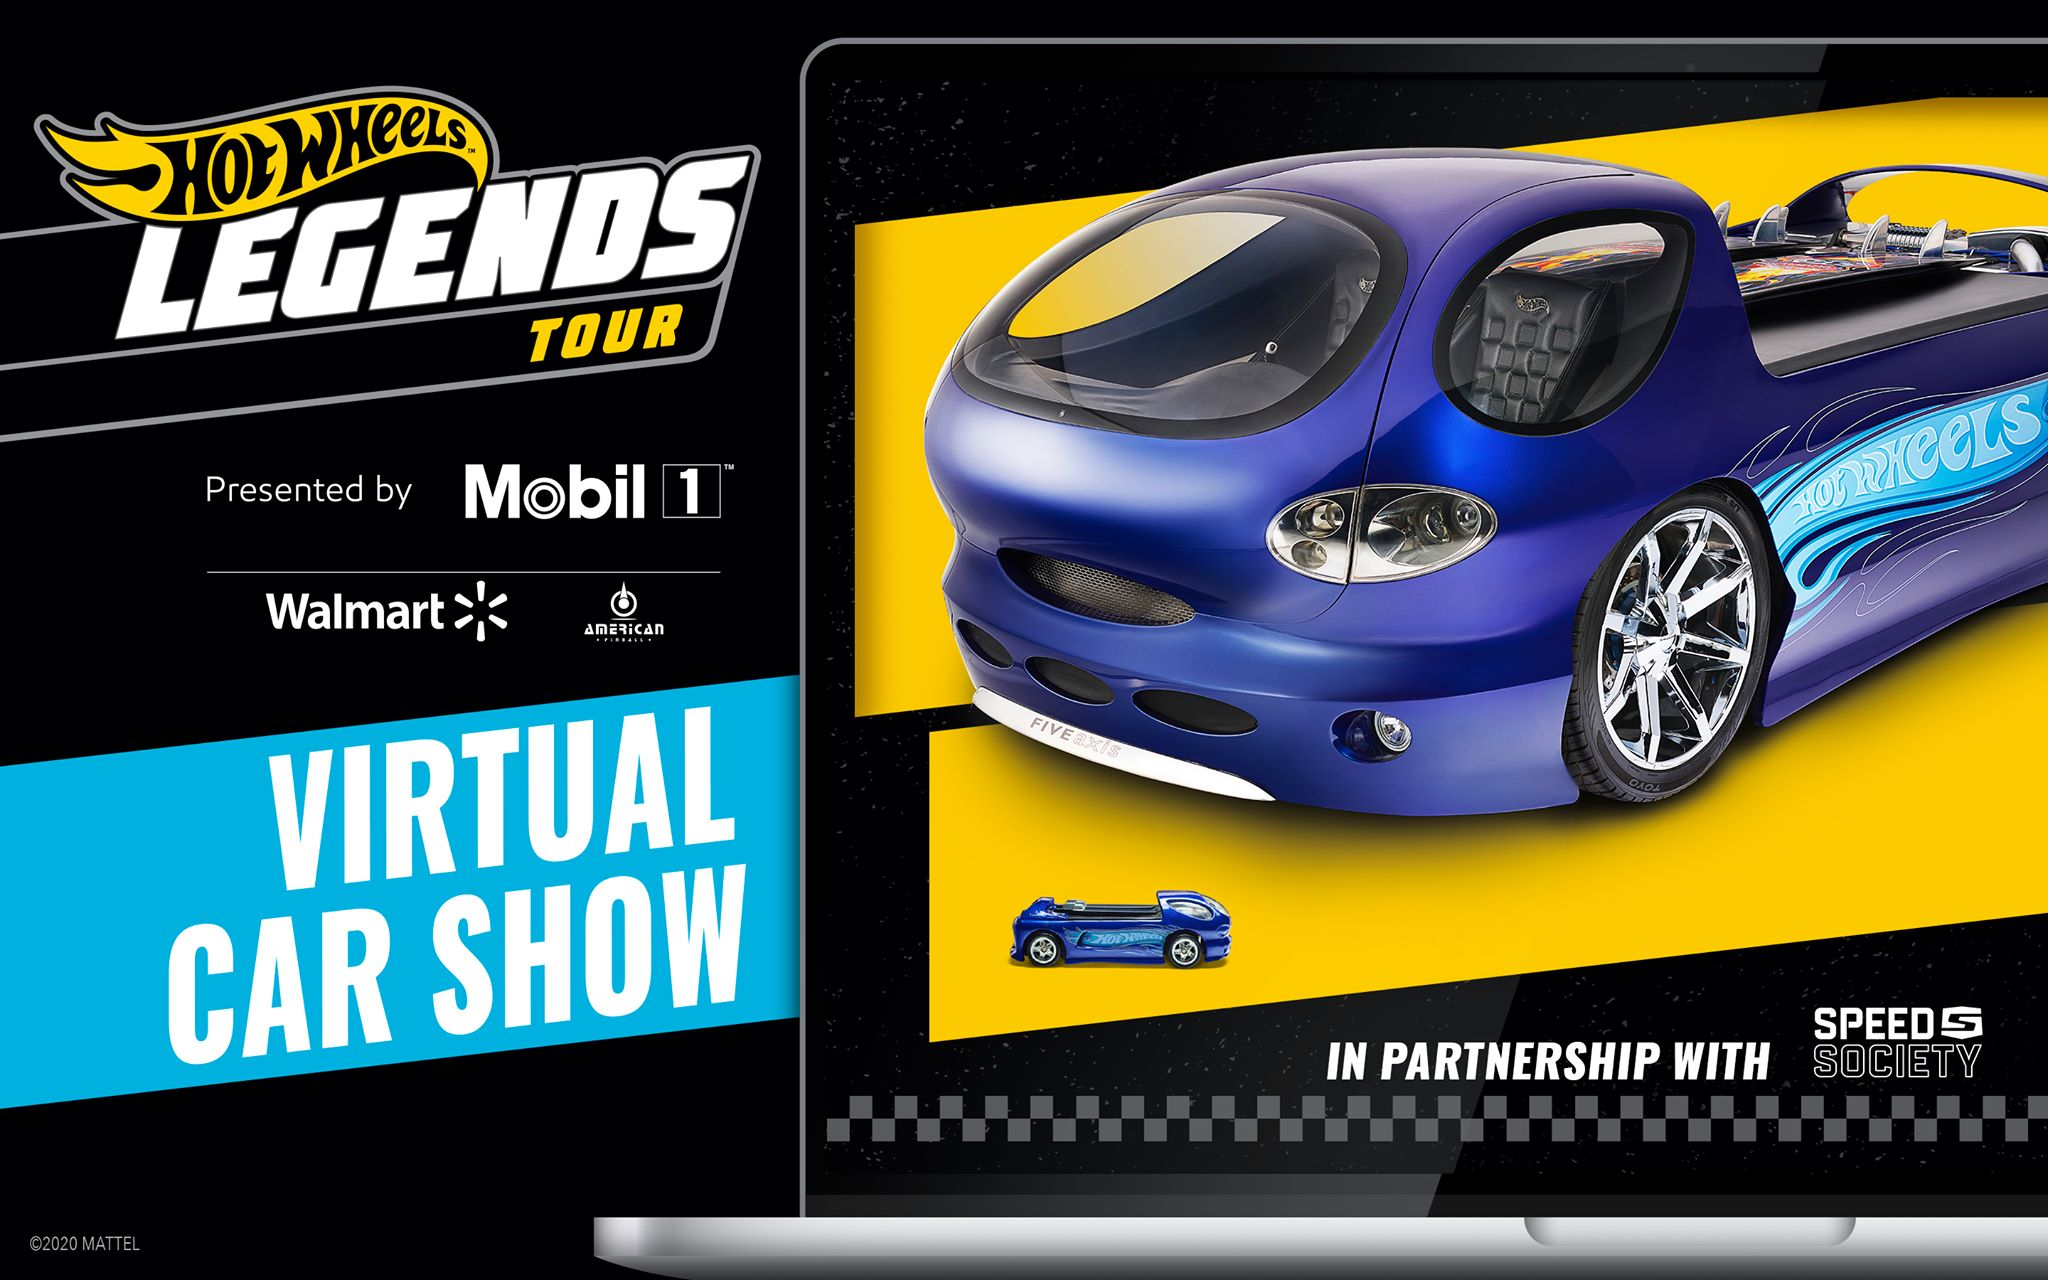 American Pinball Announces Sponsorship of Hot Wheels Legends Tour Virtual Car Show